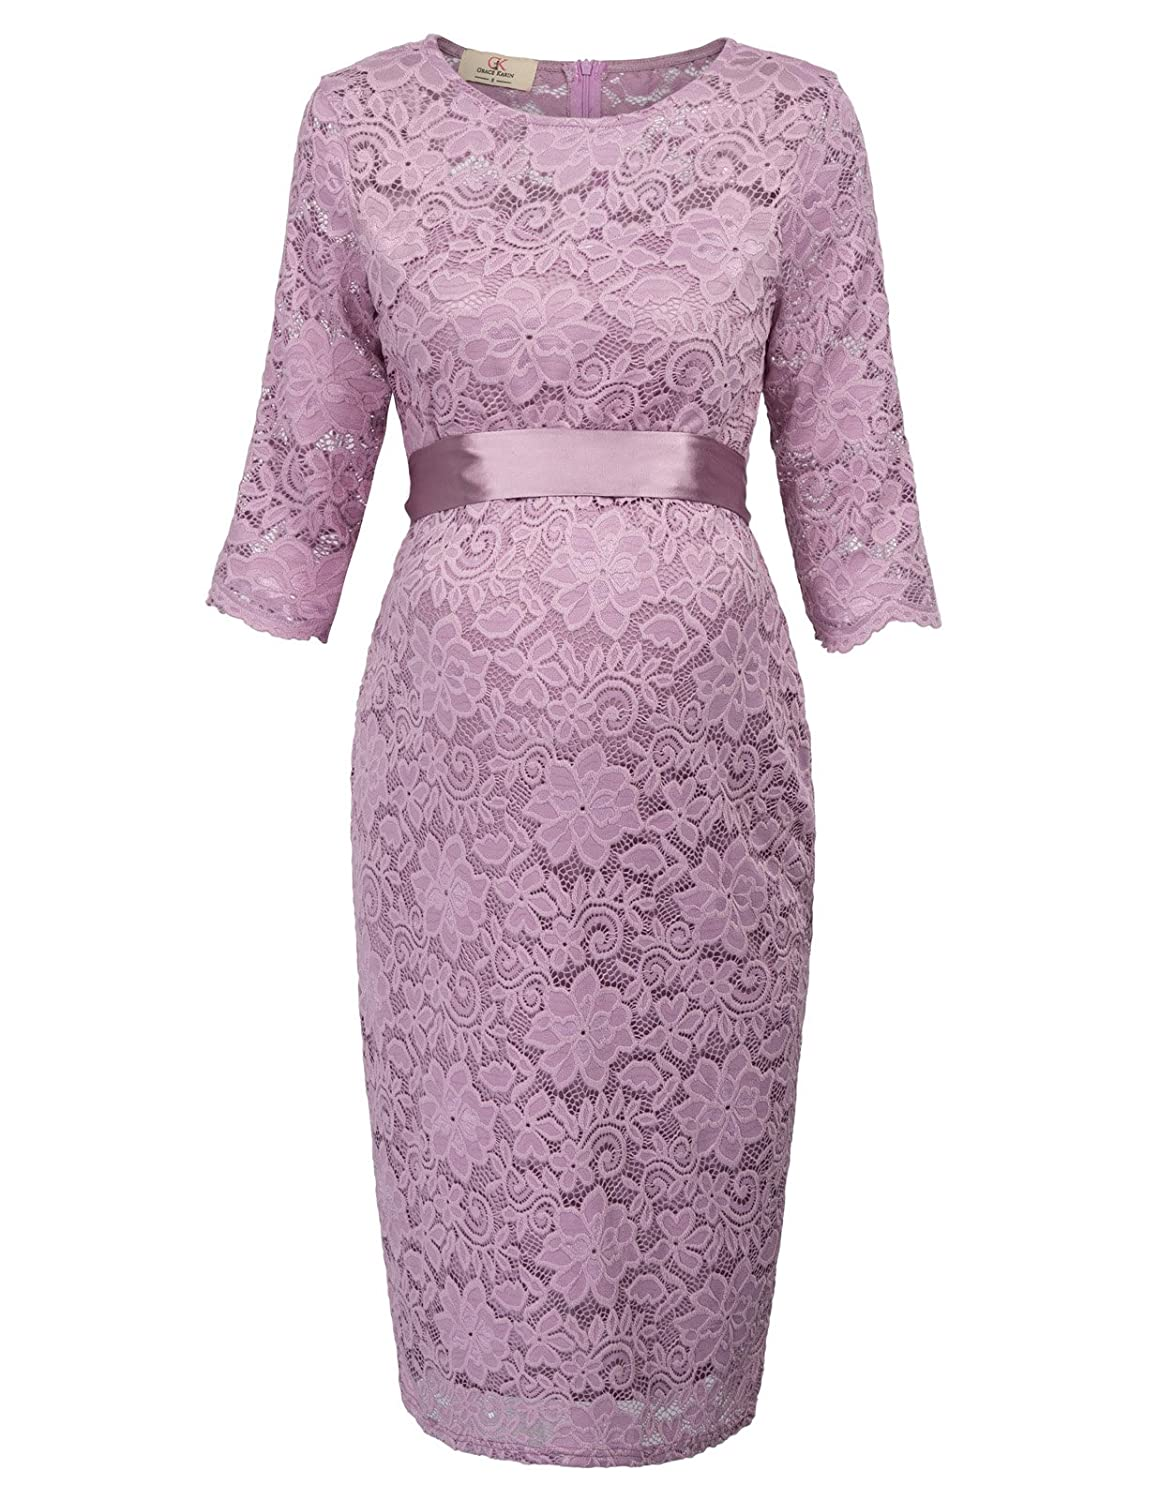 GRACE KARIN Maternity Women Half Sleeve Hips-Wrapped Lace Party Dress